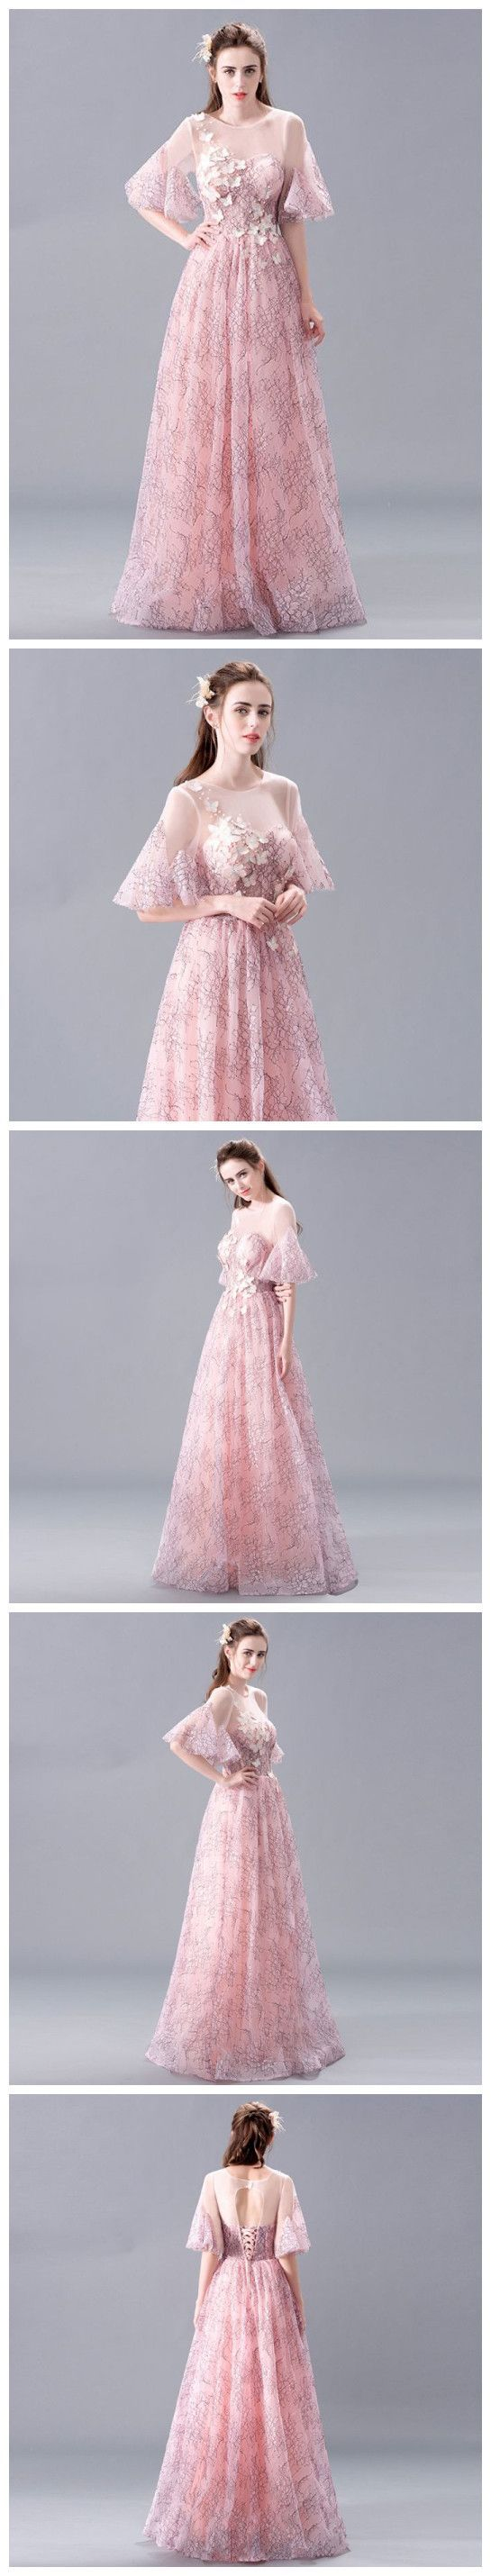 Prom dresses longprincess prom dressesprom dresses pinkcute prom